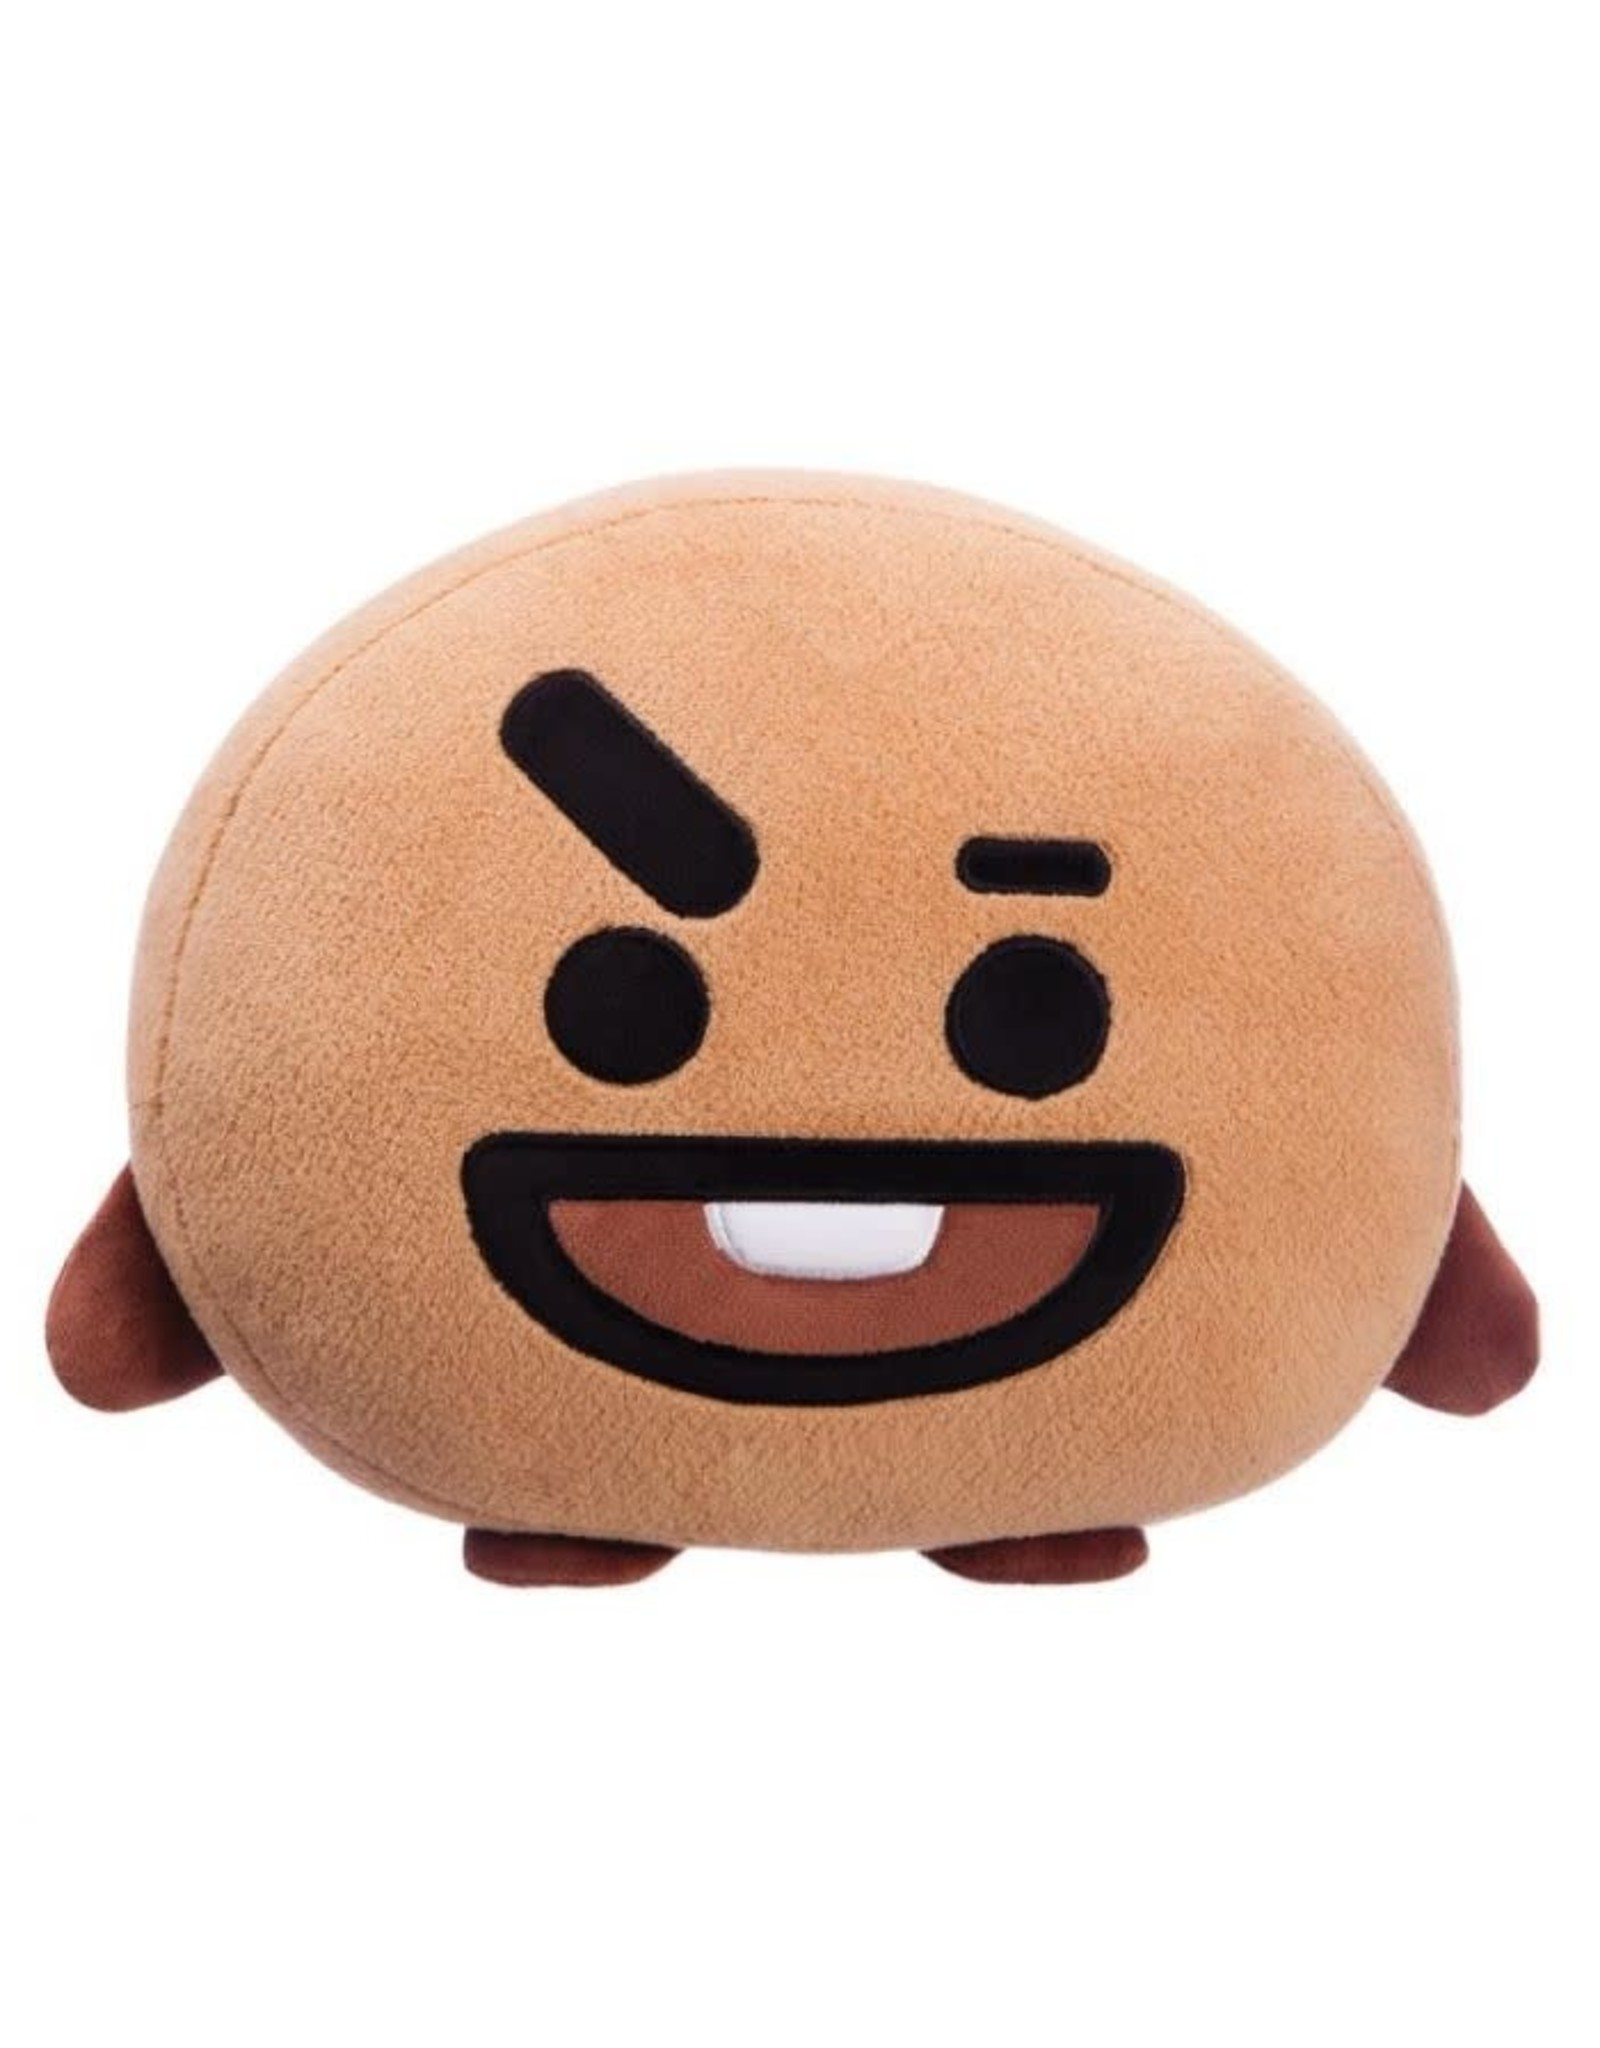 BT21 - Shooky - Line Friends Pillow - 28 cm